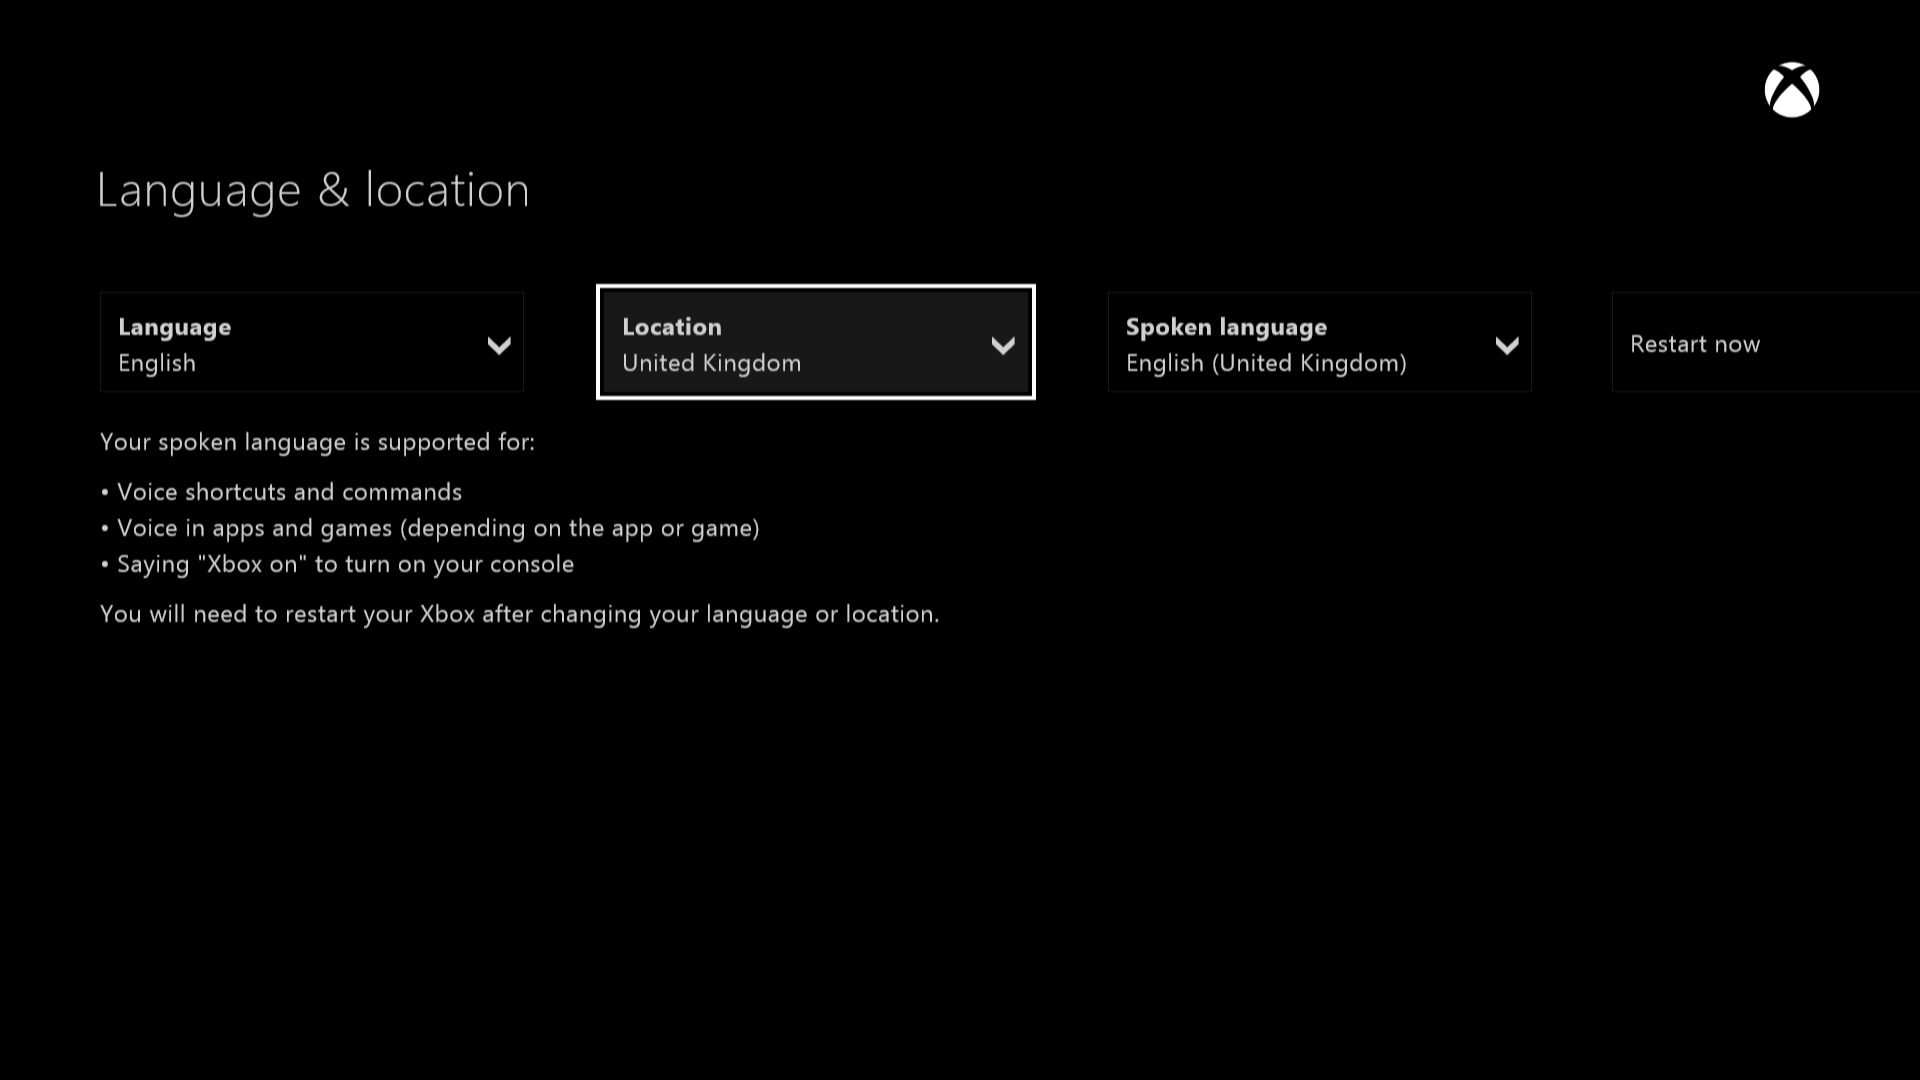 Xbox One Location screen